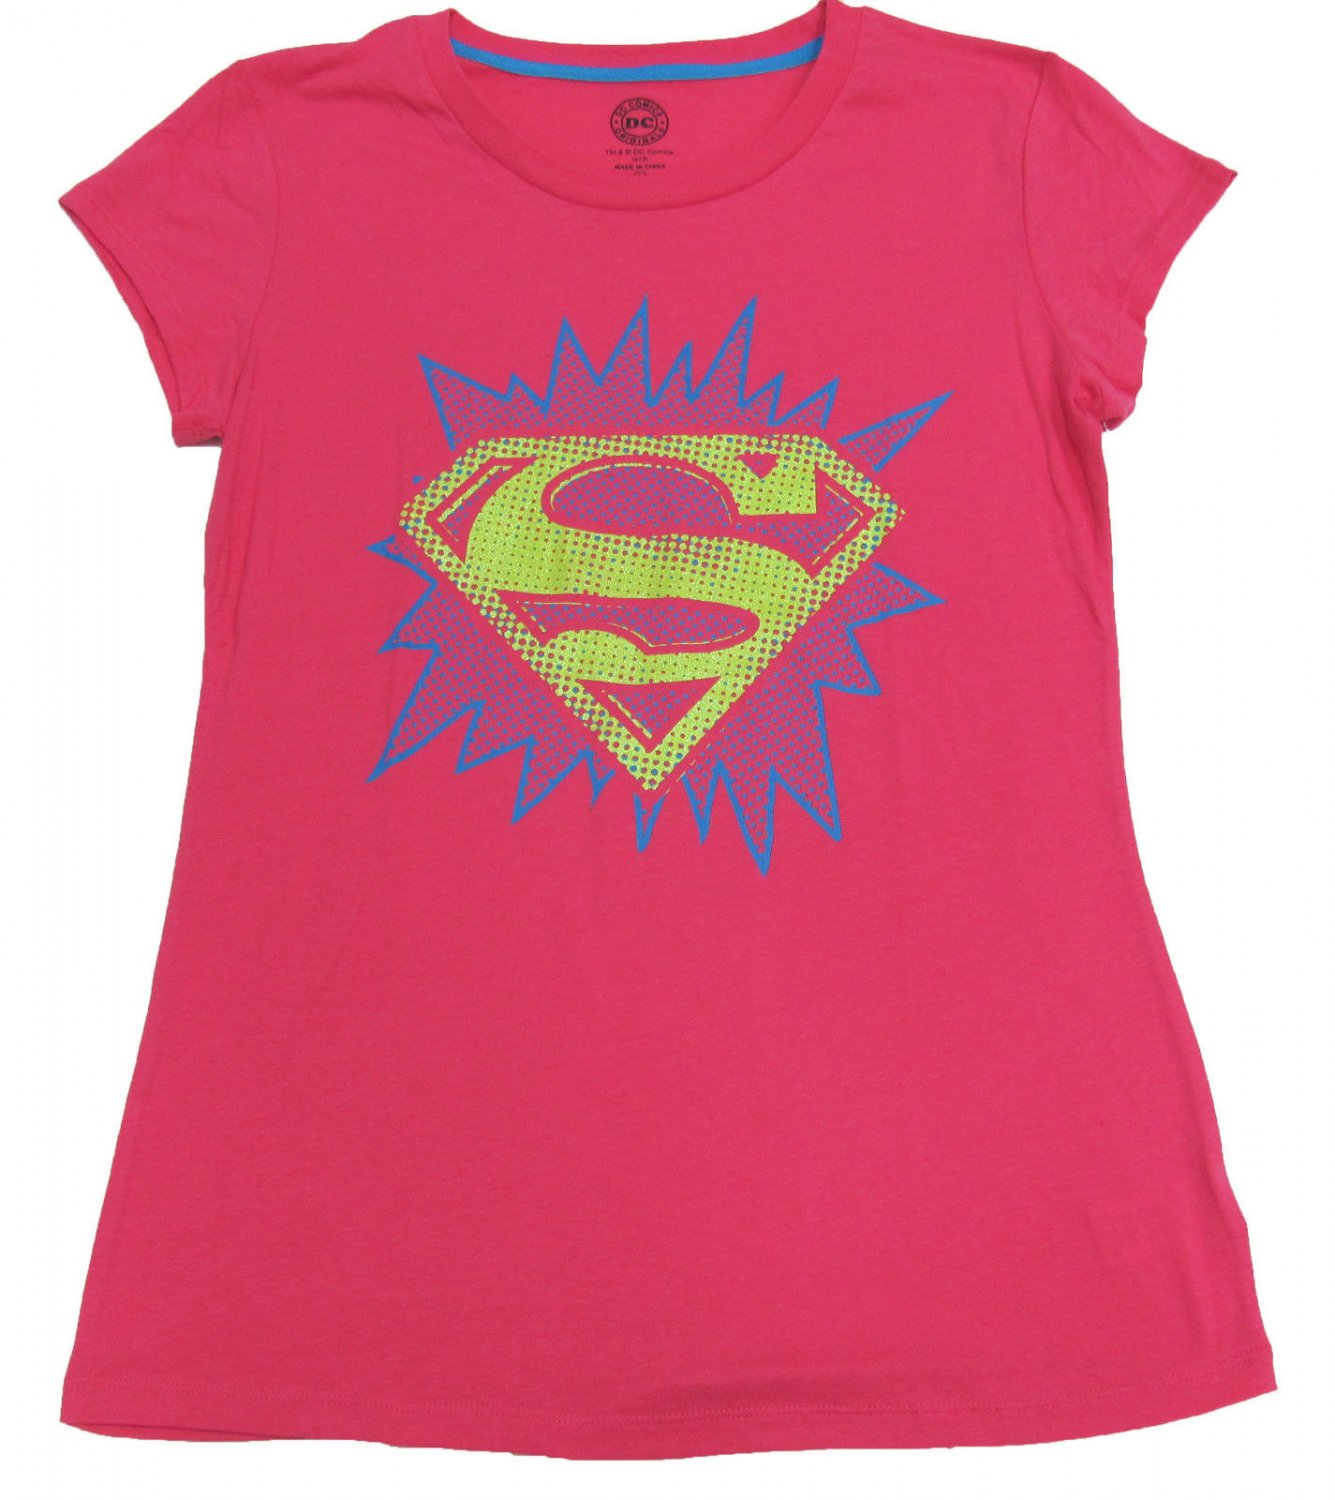 DC Comics Juniors L Bright Pink Superman Tee Shirt Sleepwear T-shirt Large